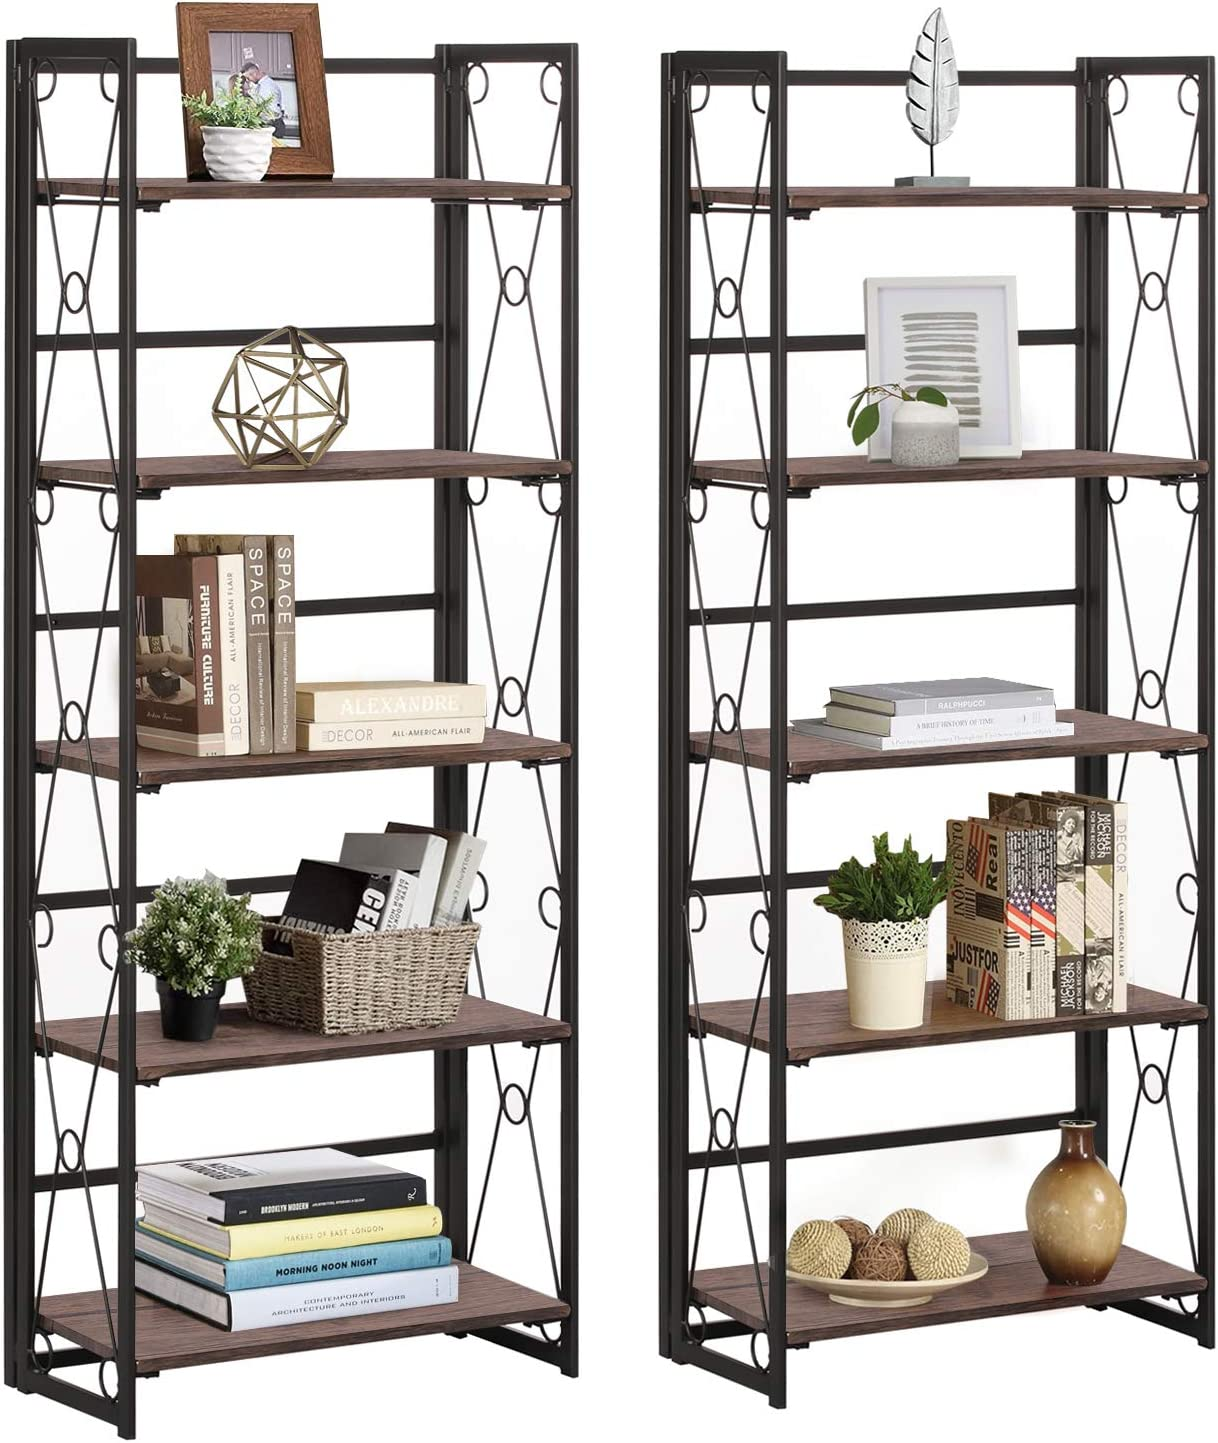 VECELO 5 Tier Bookshelf Set of 2 Industrial Folding Bookcase with Metal Frames,Modern Standing Storage Rack Shelf Organizer for Home and Office, 2 Set, Brown